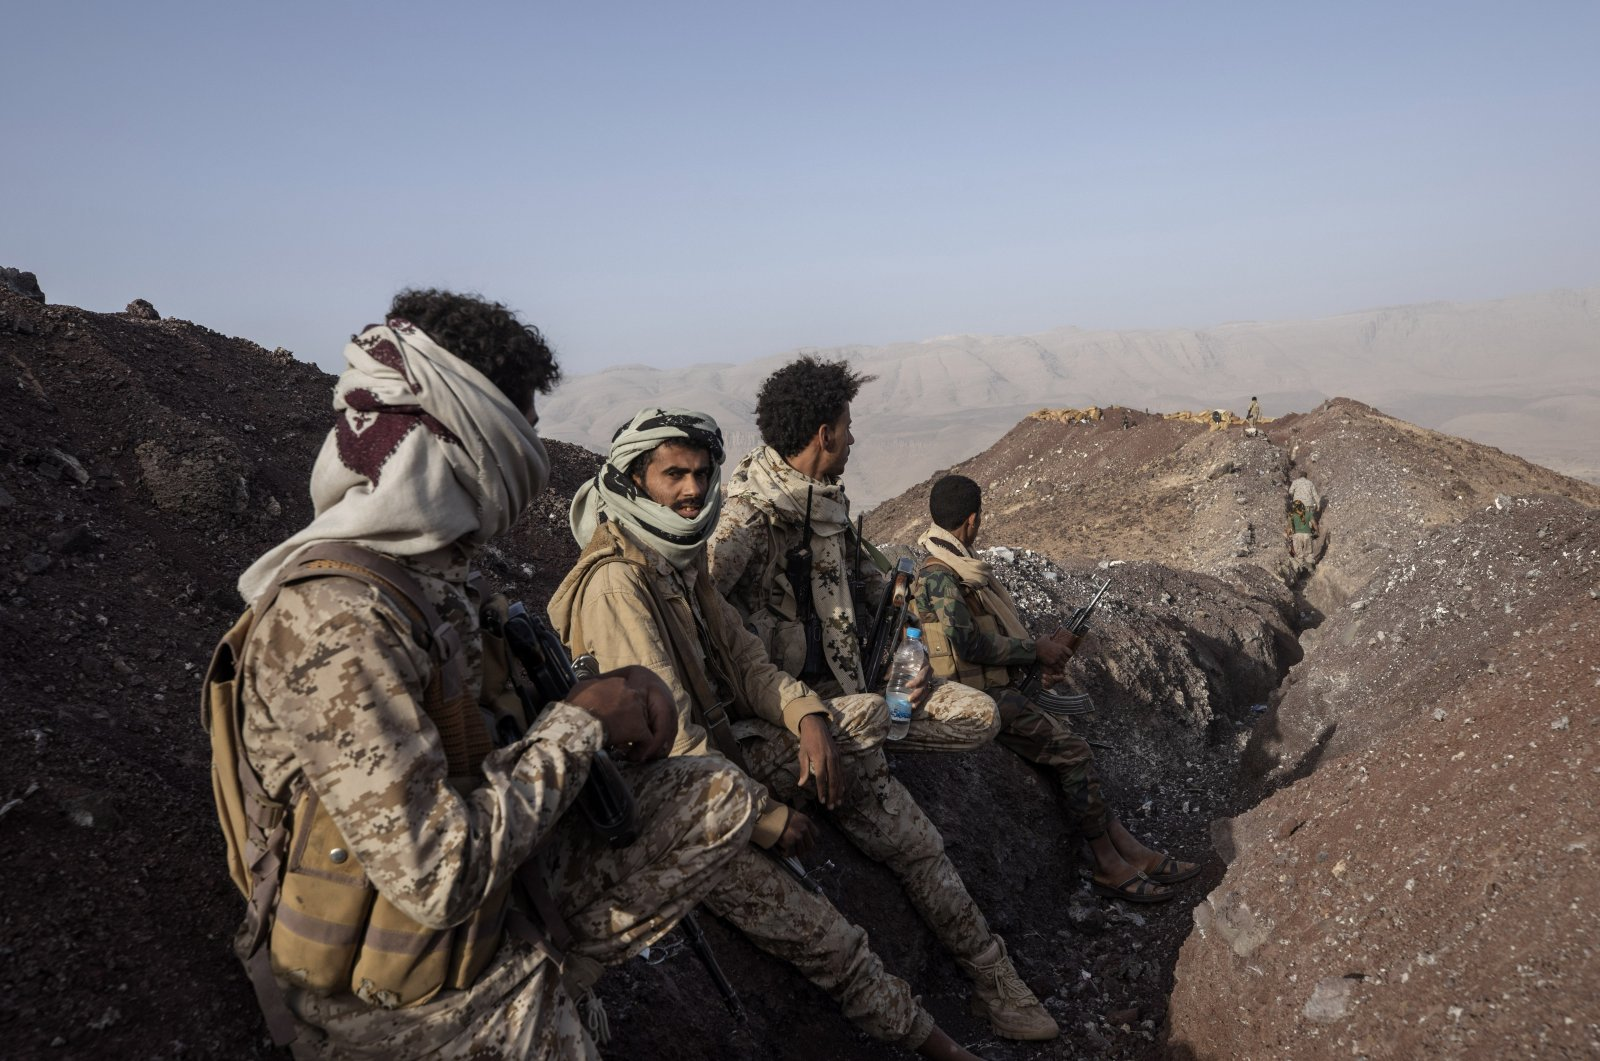 Yemeni fighters backed by the Saudi-led coalition stand at a distance from the front line after clashes with Houthi rebels on the Kassara front line near Marib, Yemen, June 20, 2021. (AP Photo)